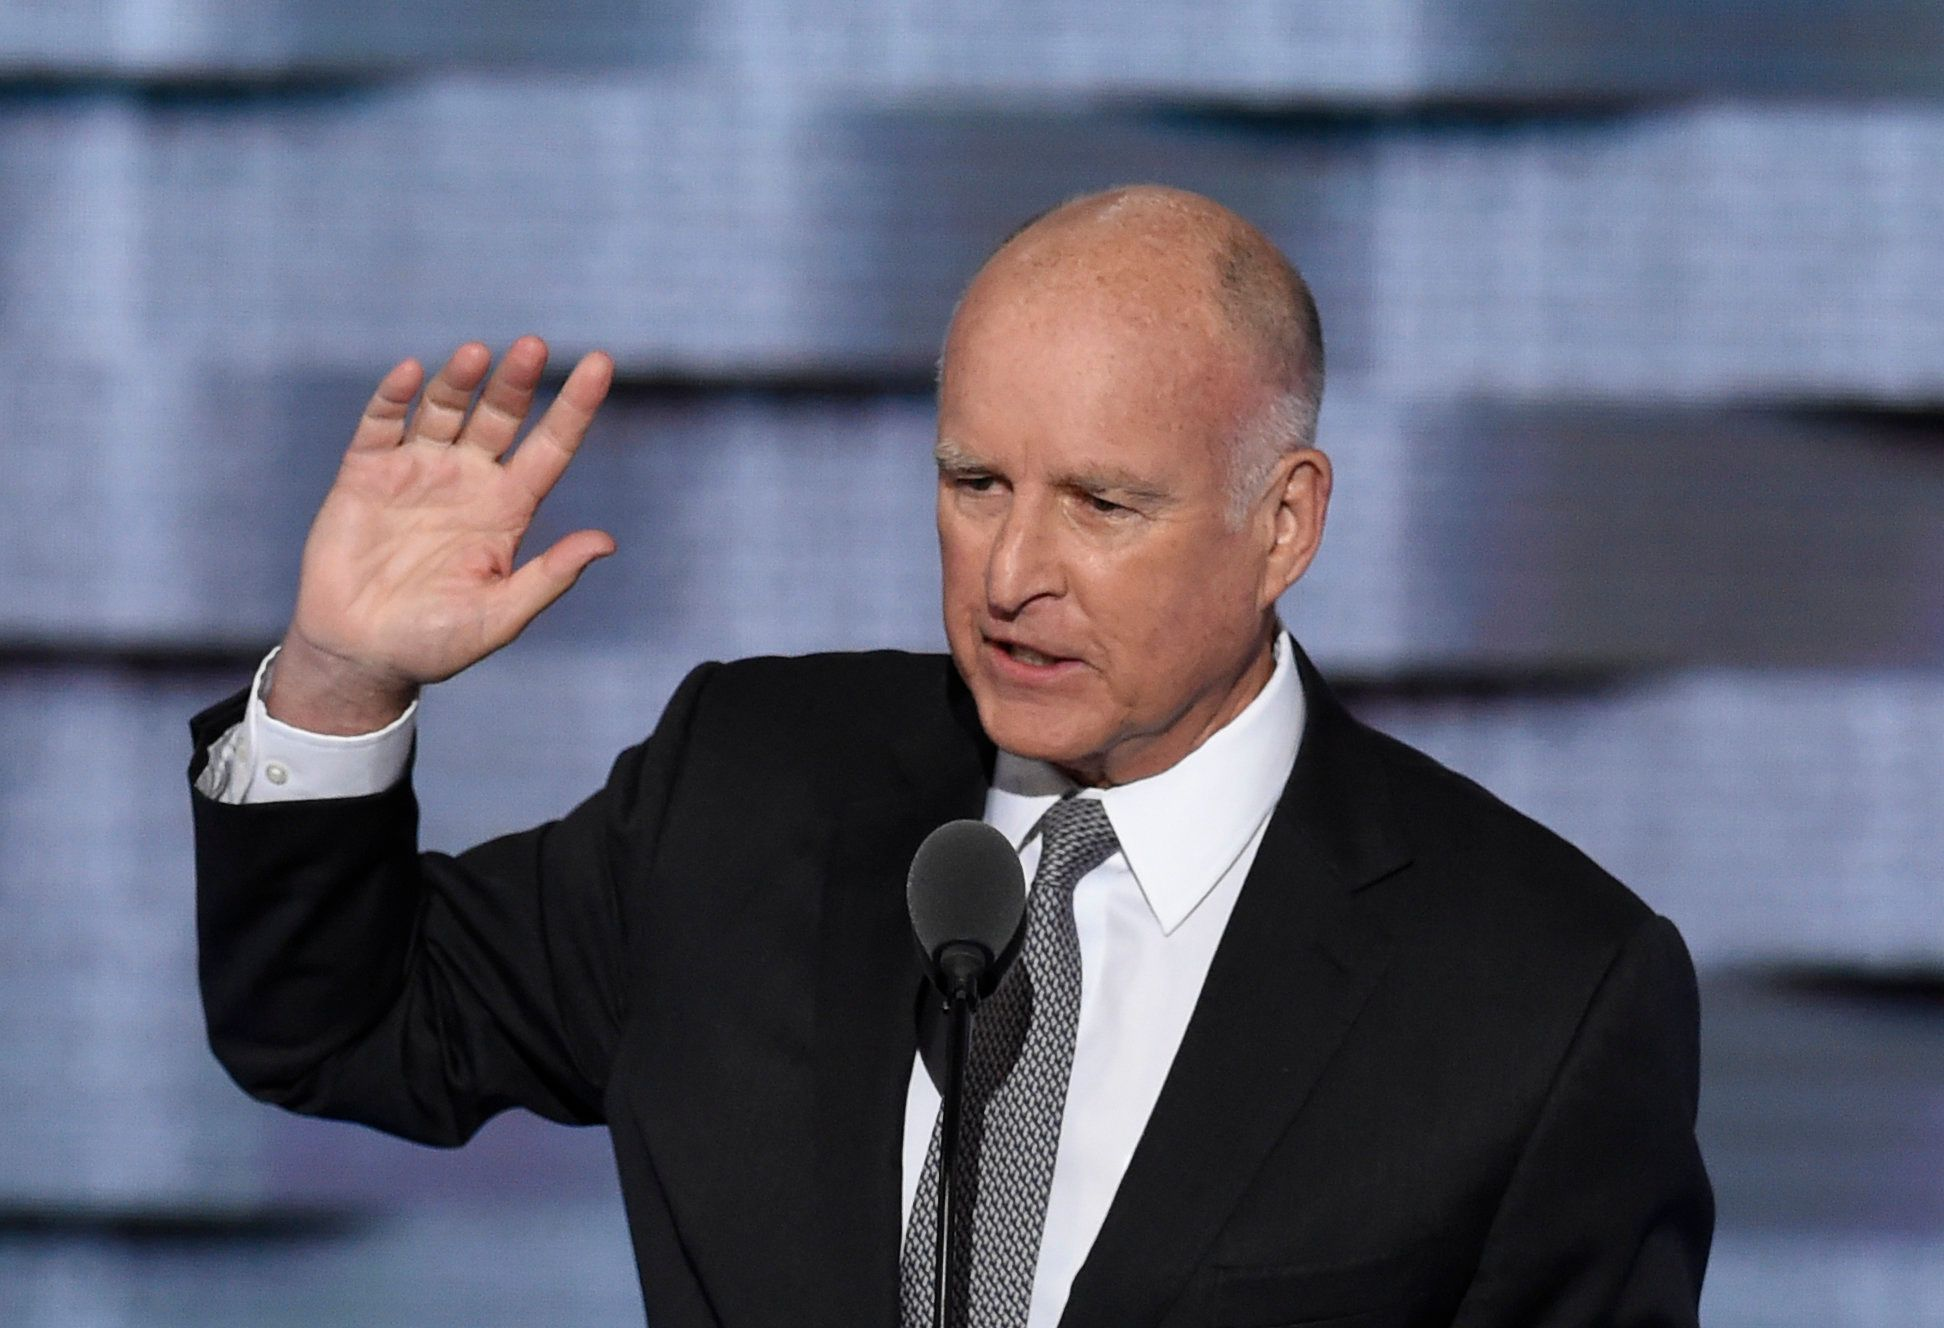 California Governor Jerry Brown addresses Day Three of the Democratic National Convention at the Wells Fargo Center in Philadelphia, Pennsylvania, July 27, 2016. / AFP / SAUL LOEB        (Photo credit should read SAUL LOEB/AFP/Getty Images)